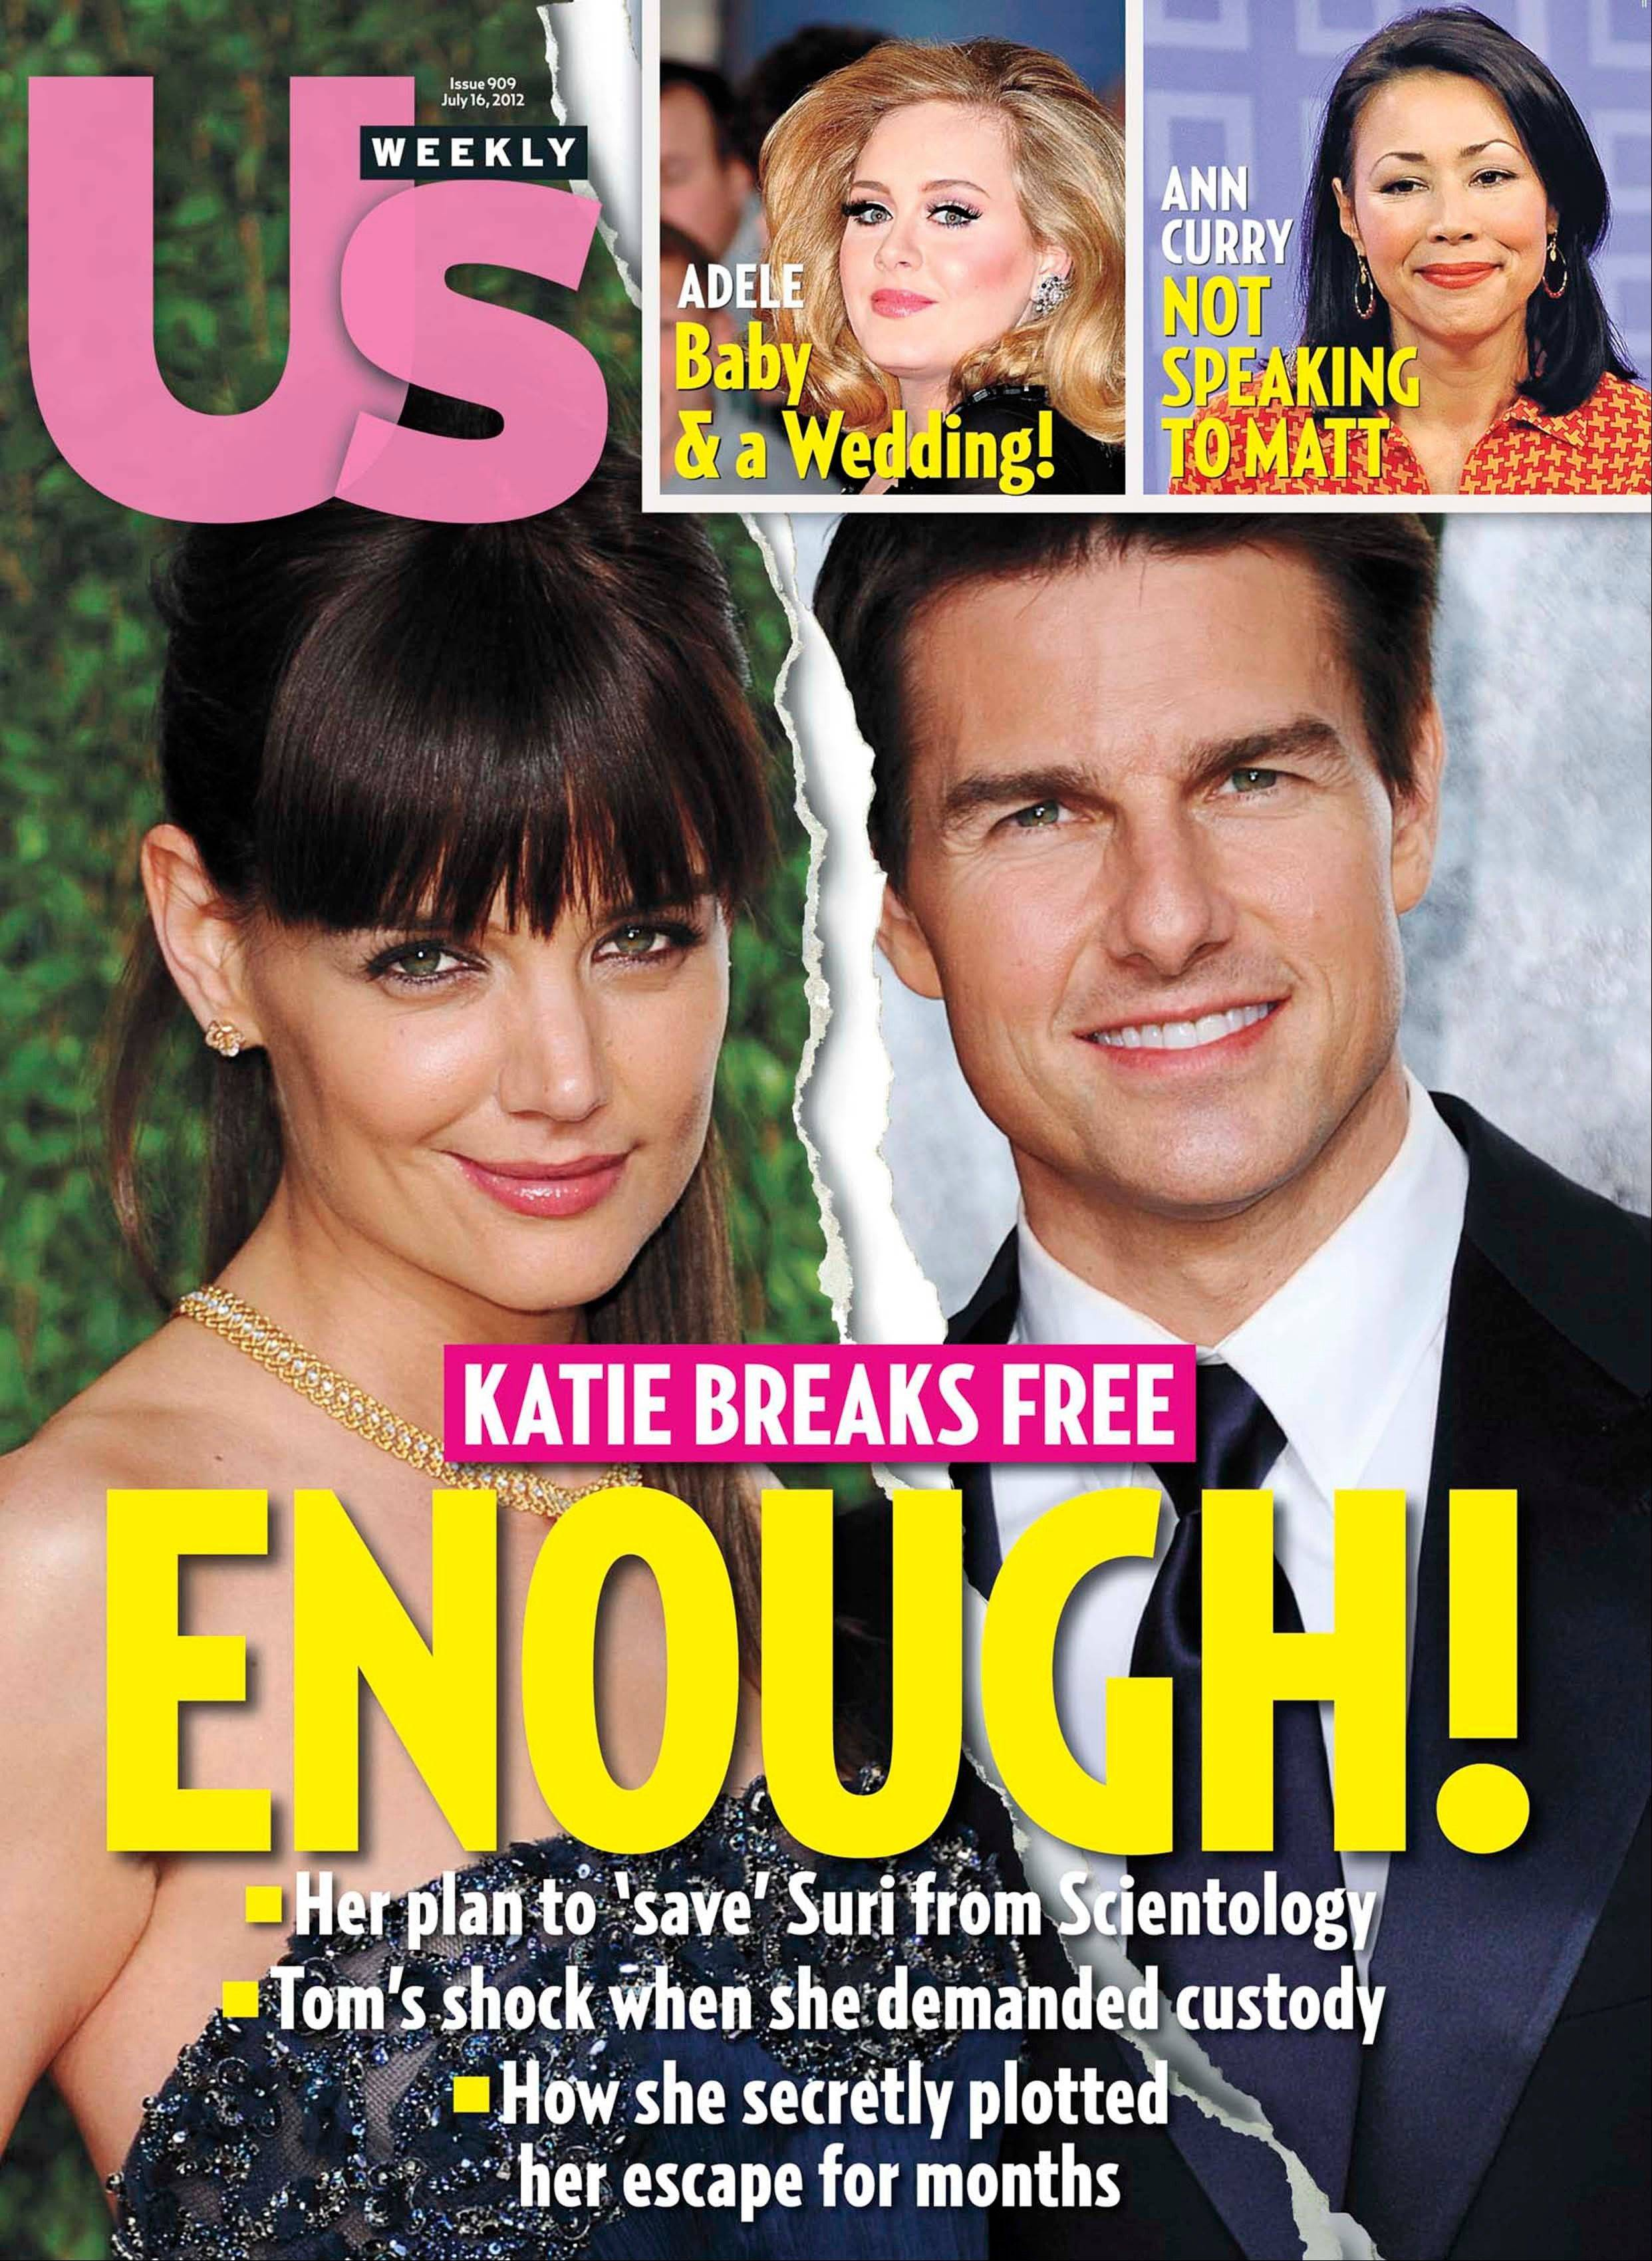 The cover of US Weekly magazine features the divorce of actors Katie Holmes and Tom Cruise.